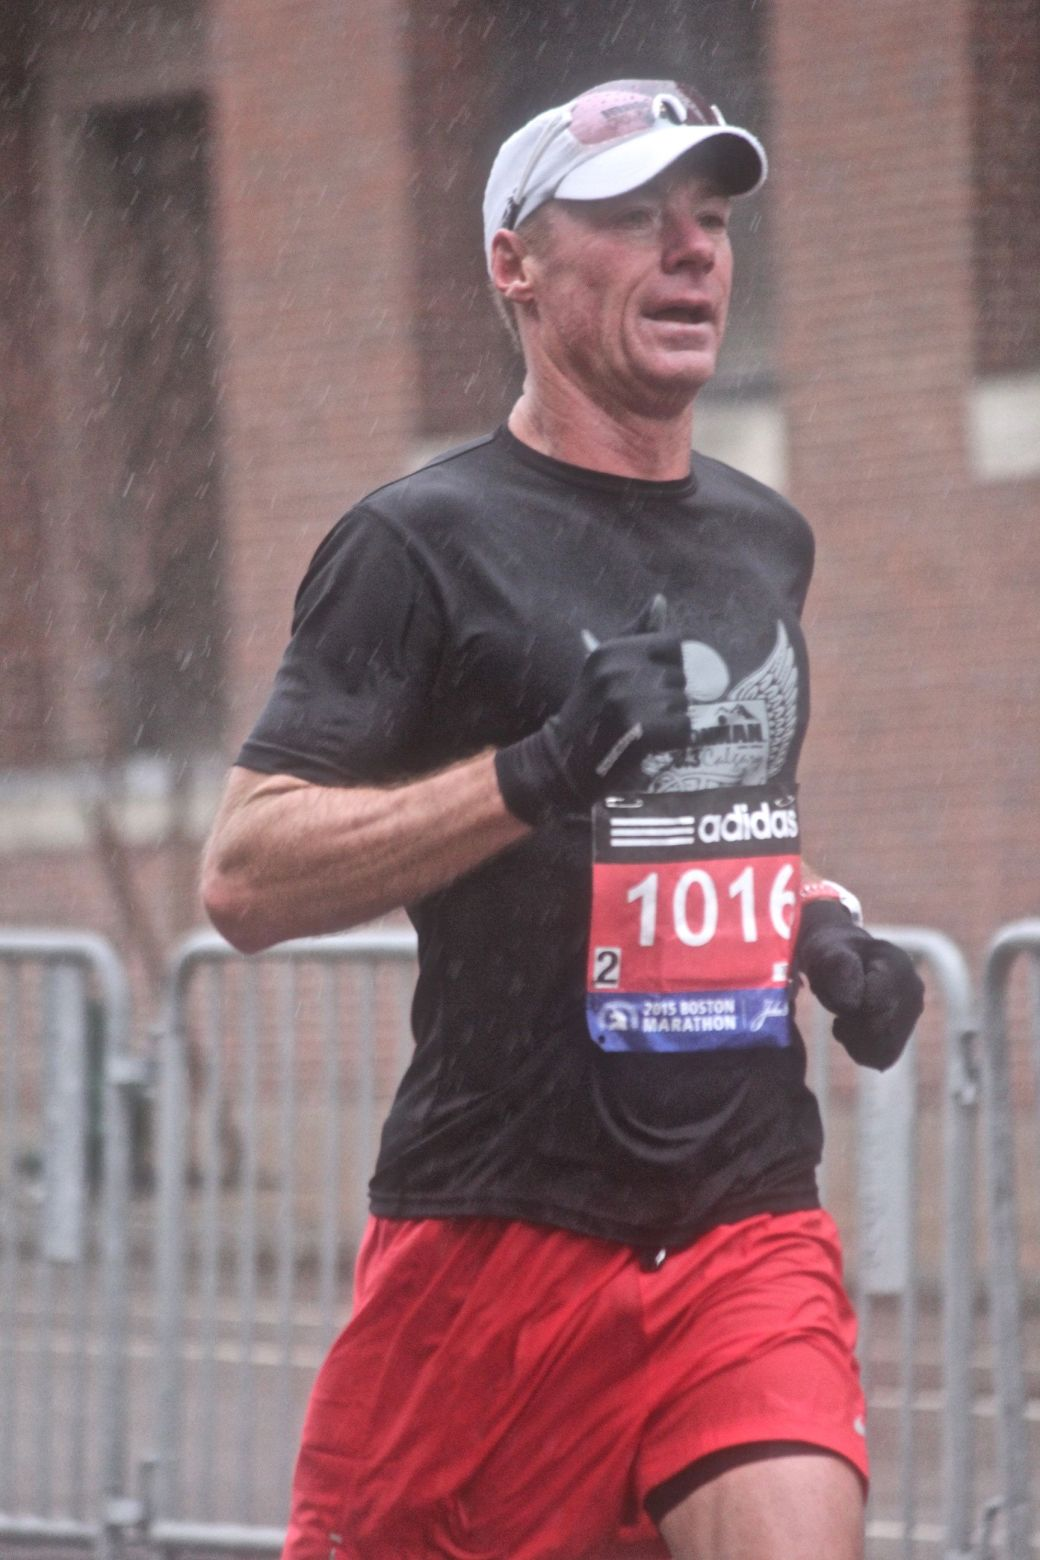 boston marathon april 20 2015 racer number 1016